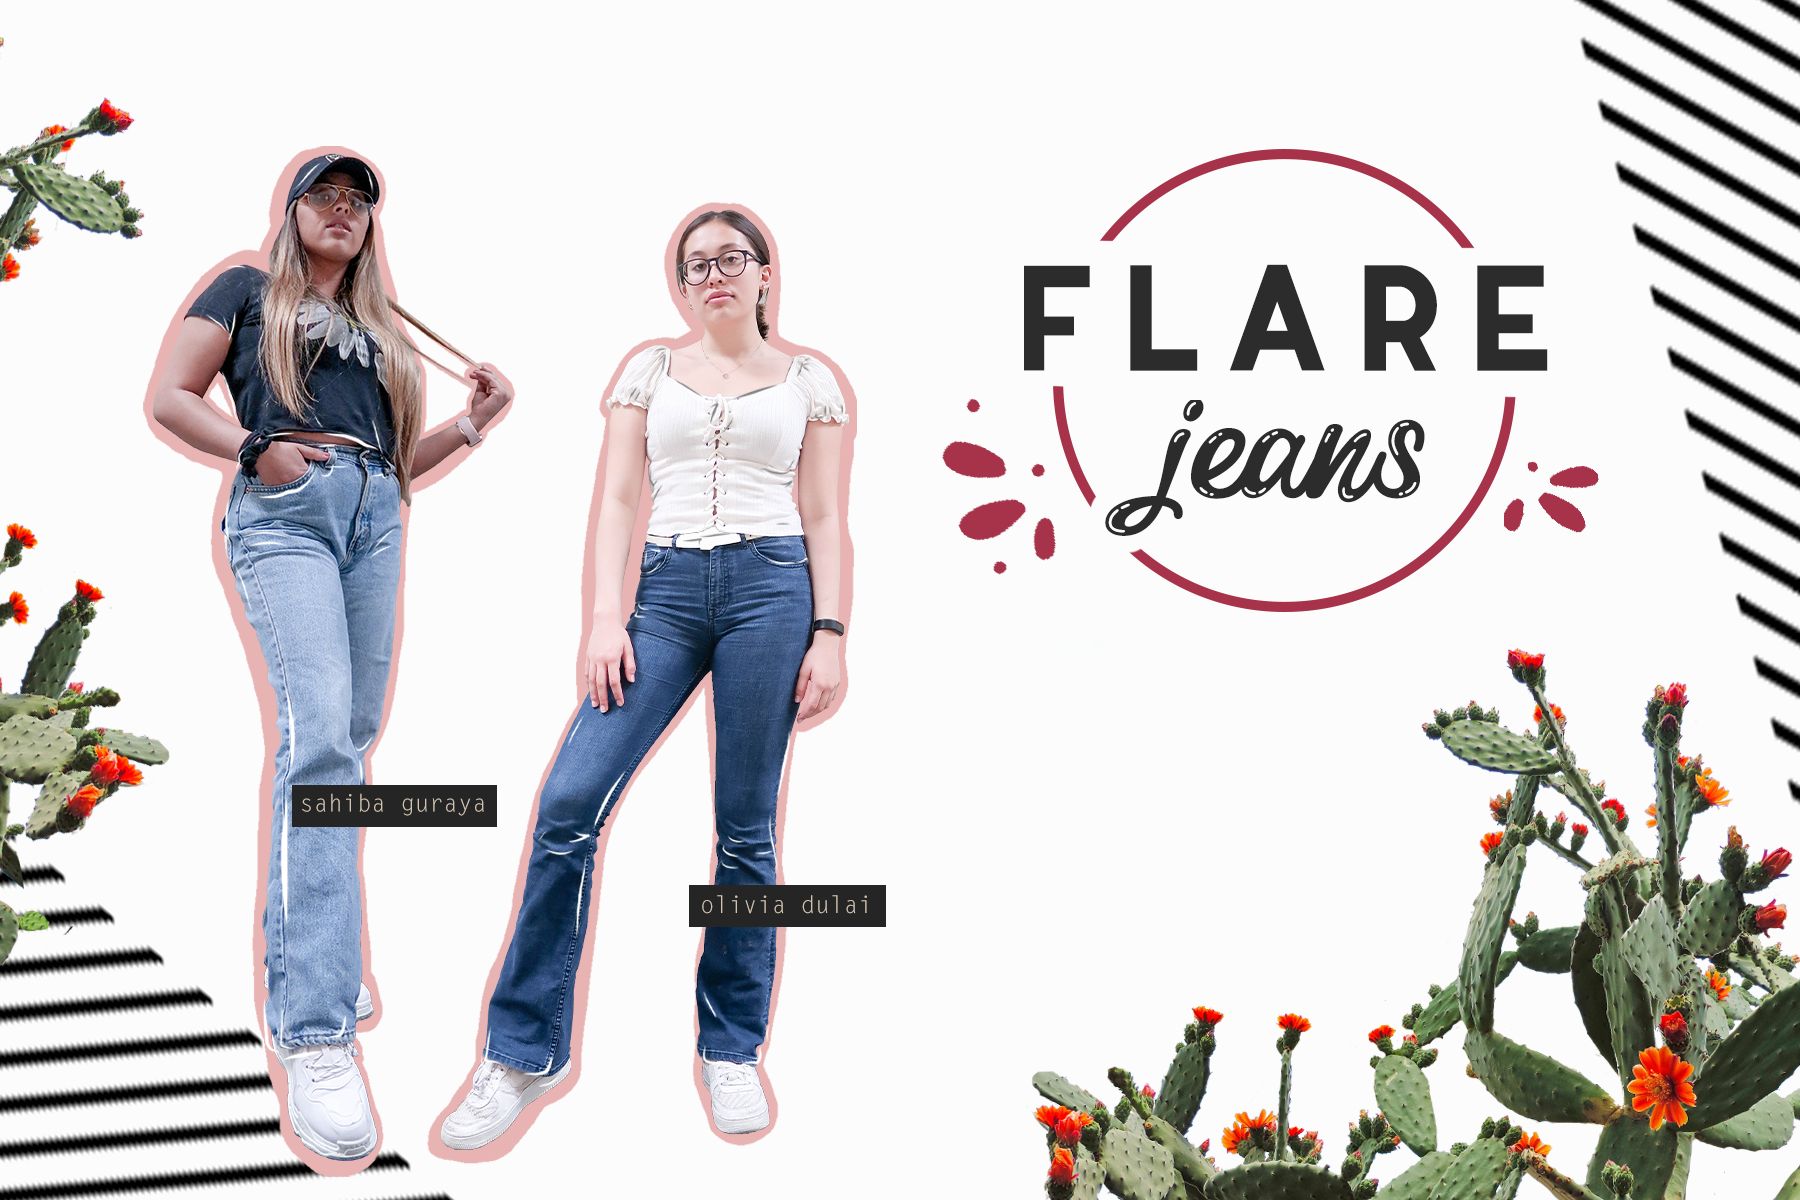 flare jeans.png